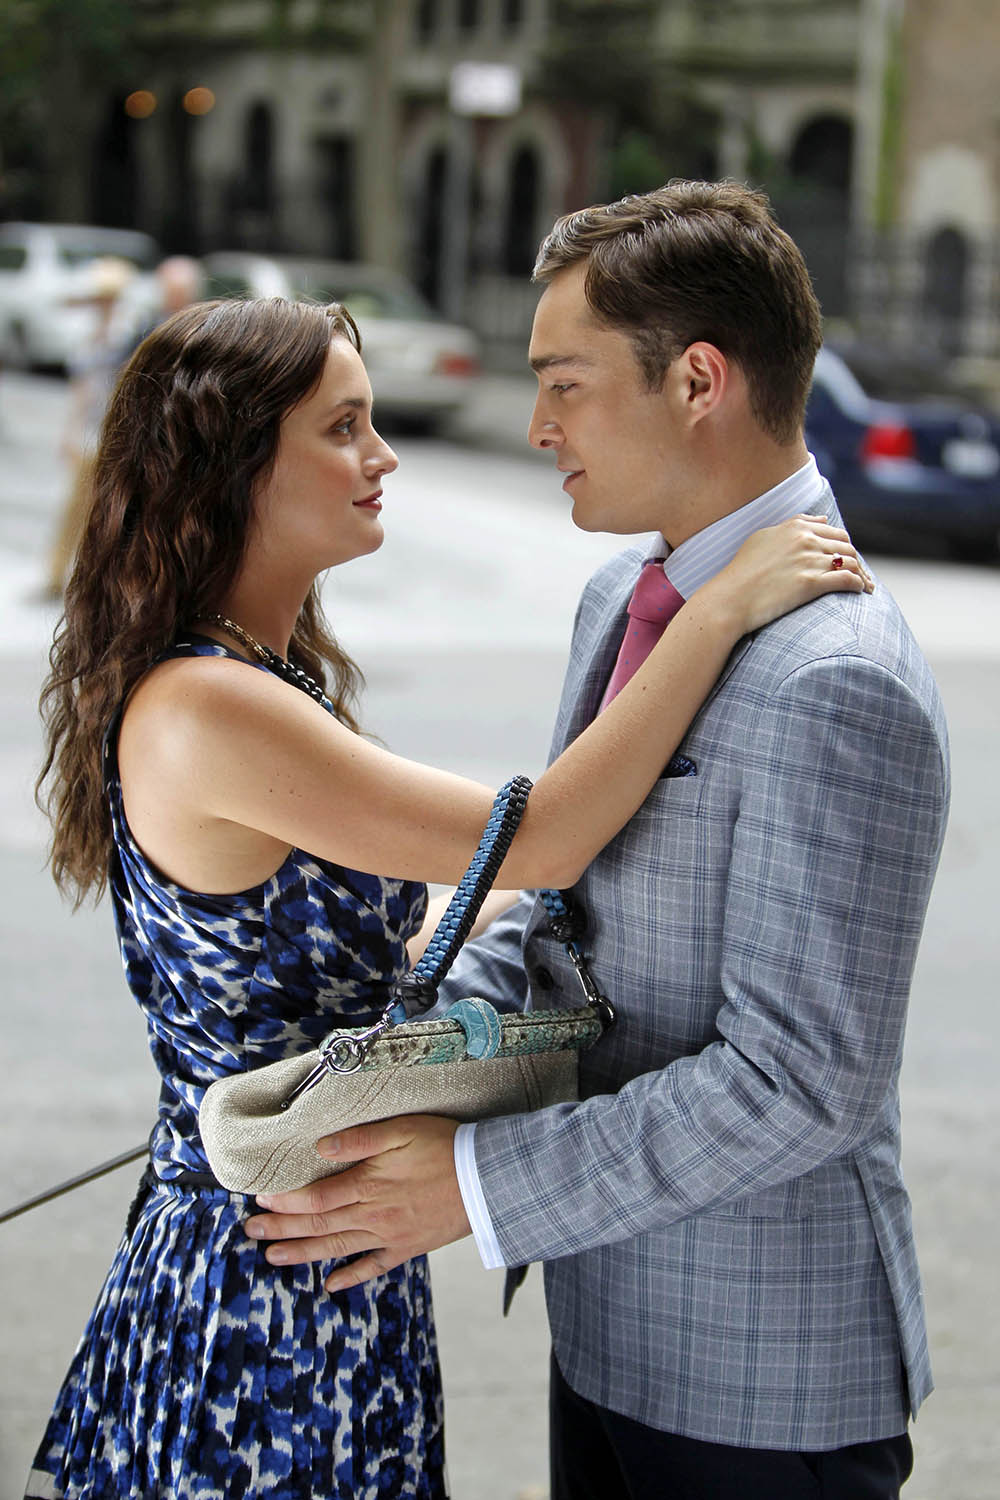 who is leighton meester dating in real life 2012